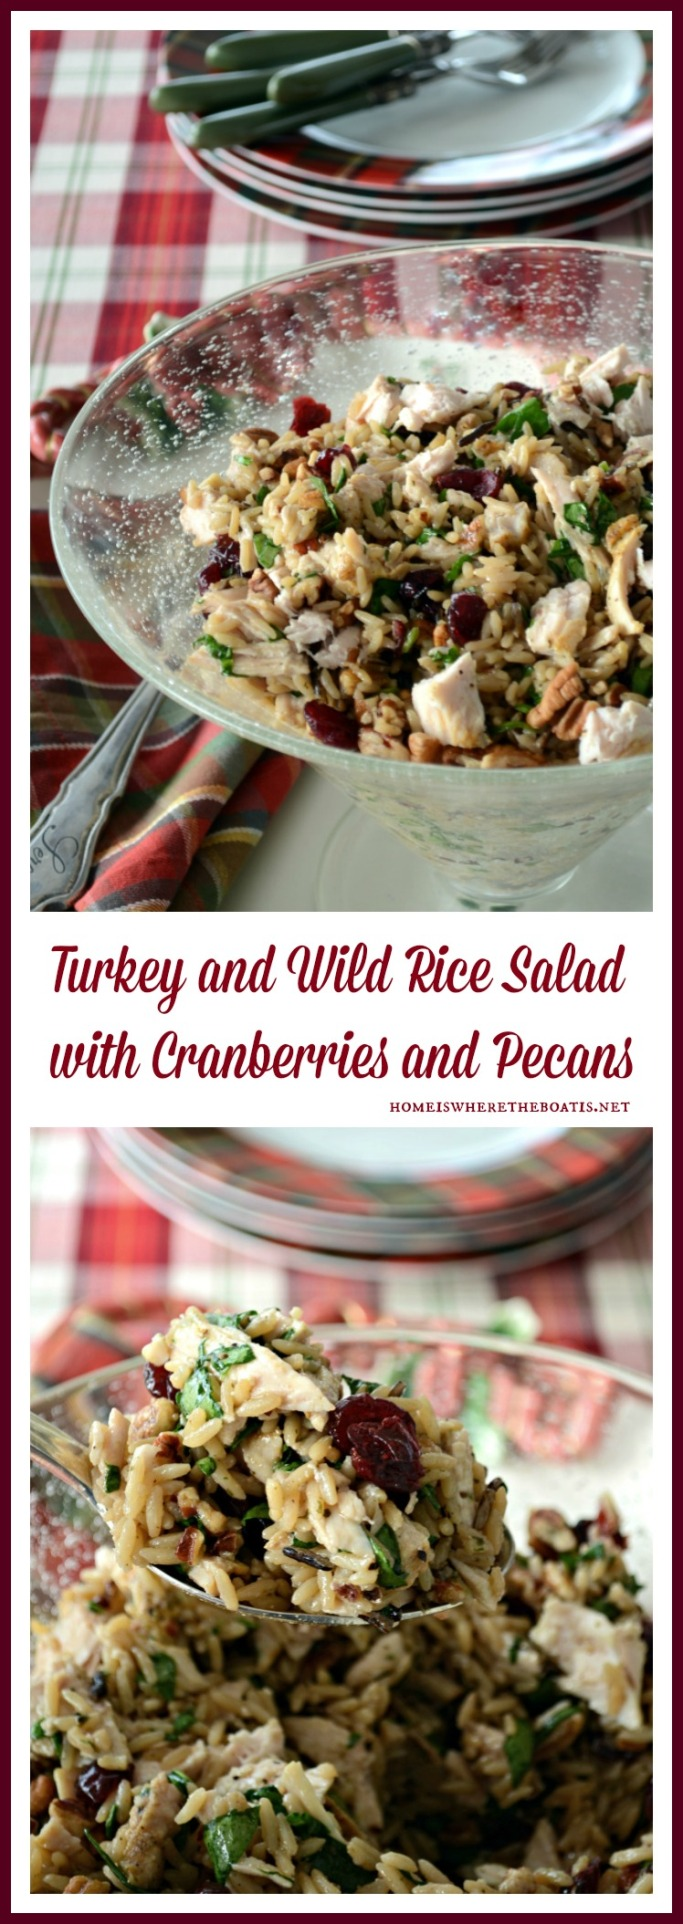 Turkey and Wild Rice Salad with Cranberries and Pecans